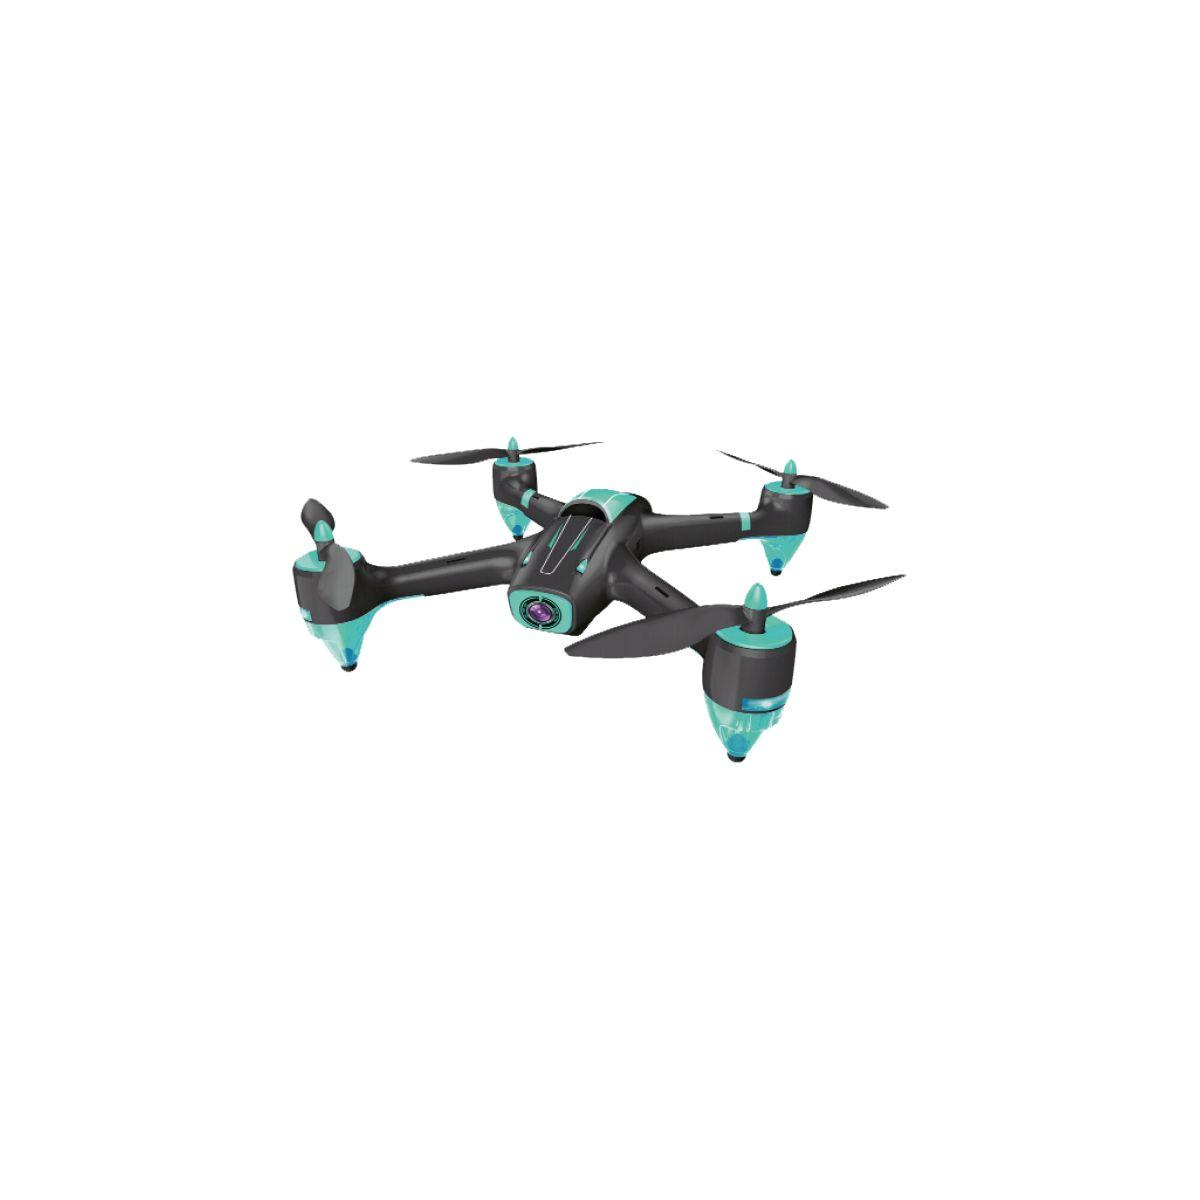 Drones pnj r-falcon (photo)